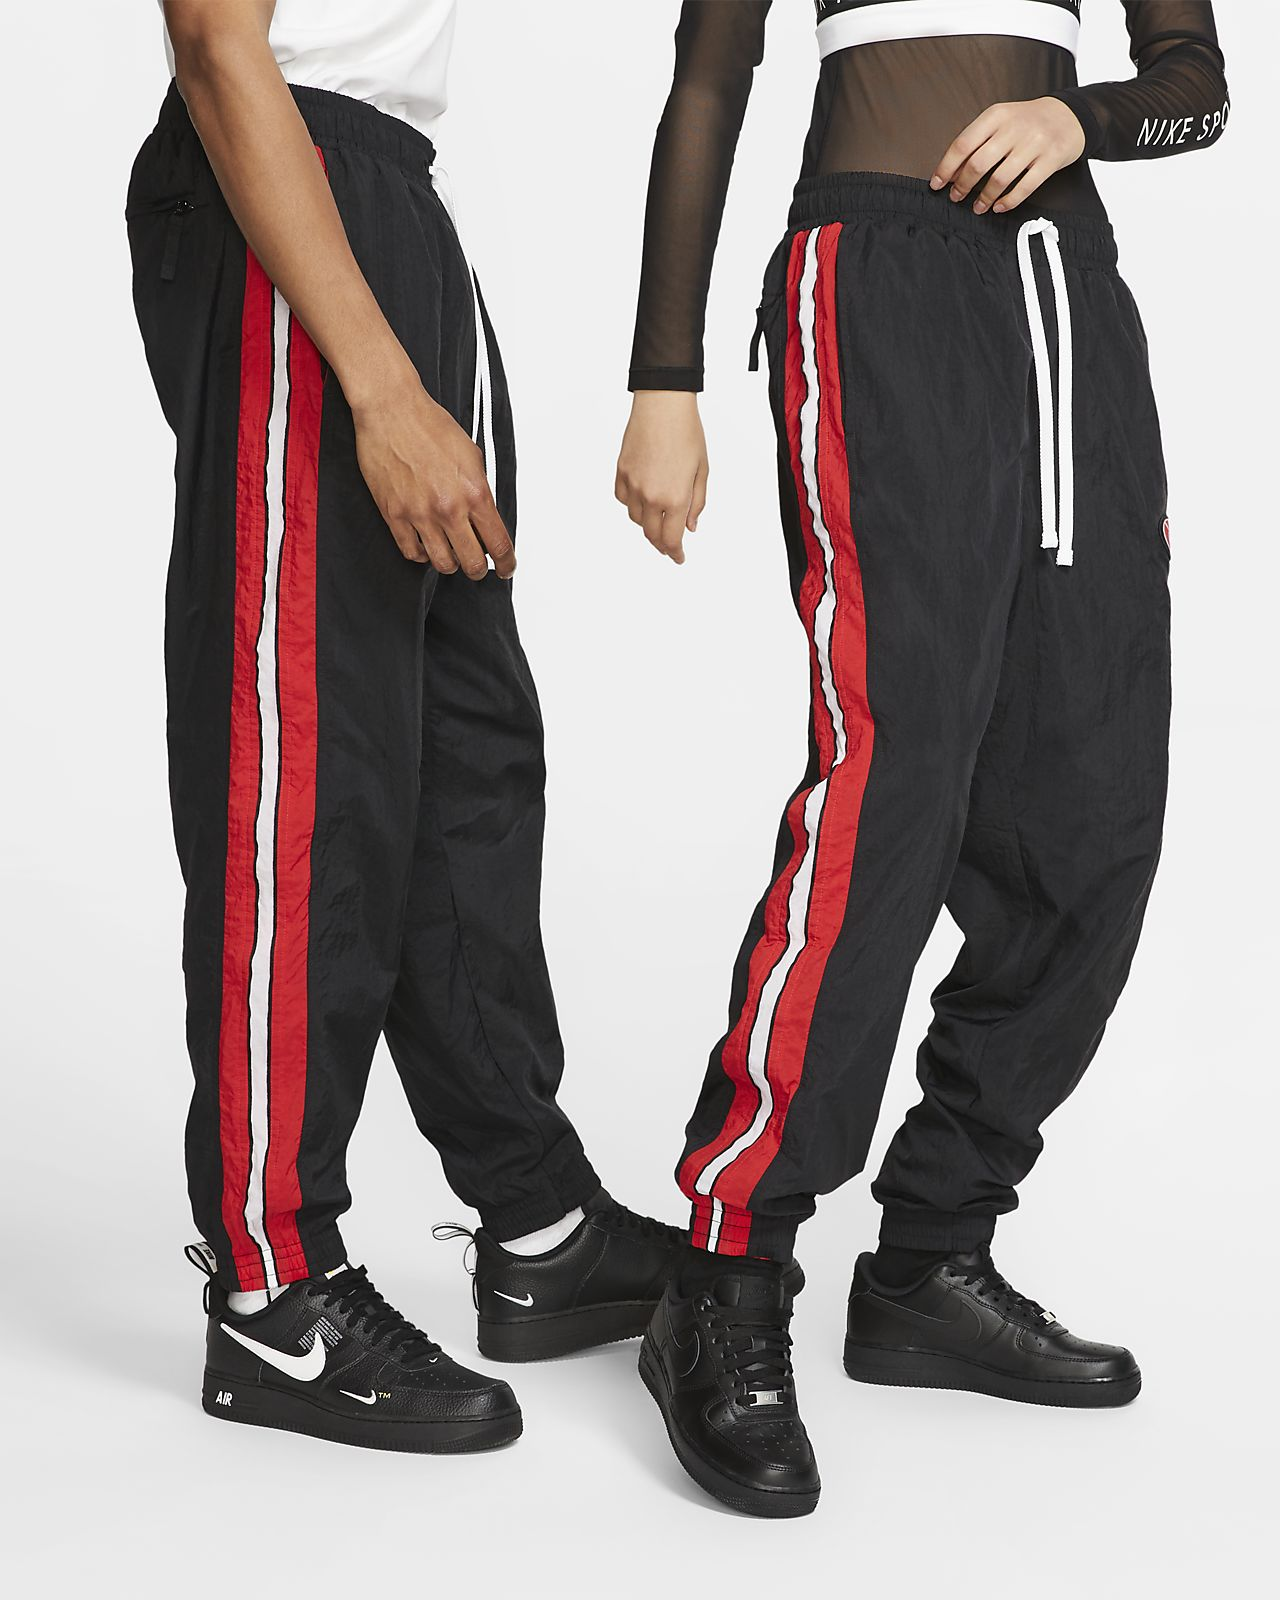 Nike Throwback Woven Tracksuit Basketball Pants Mens Style